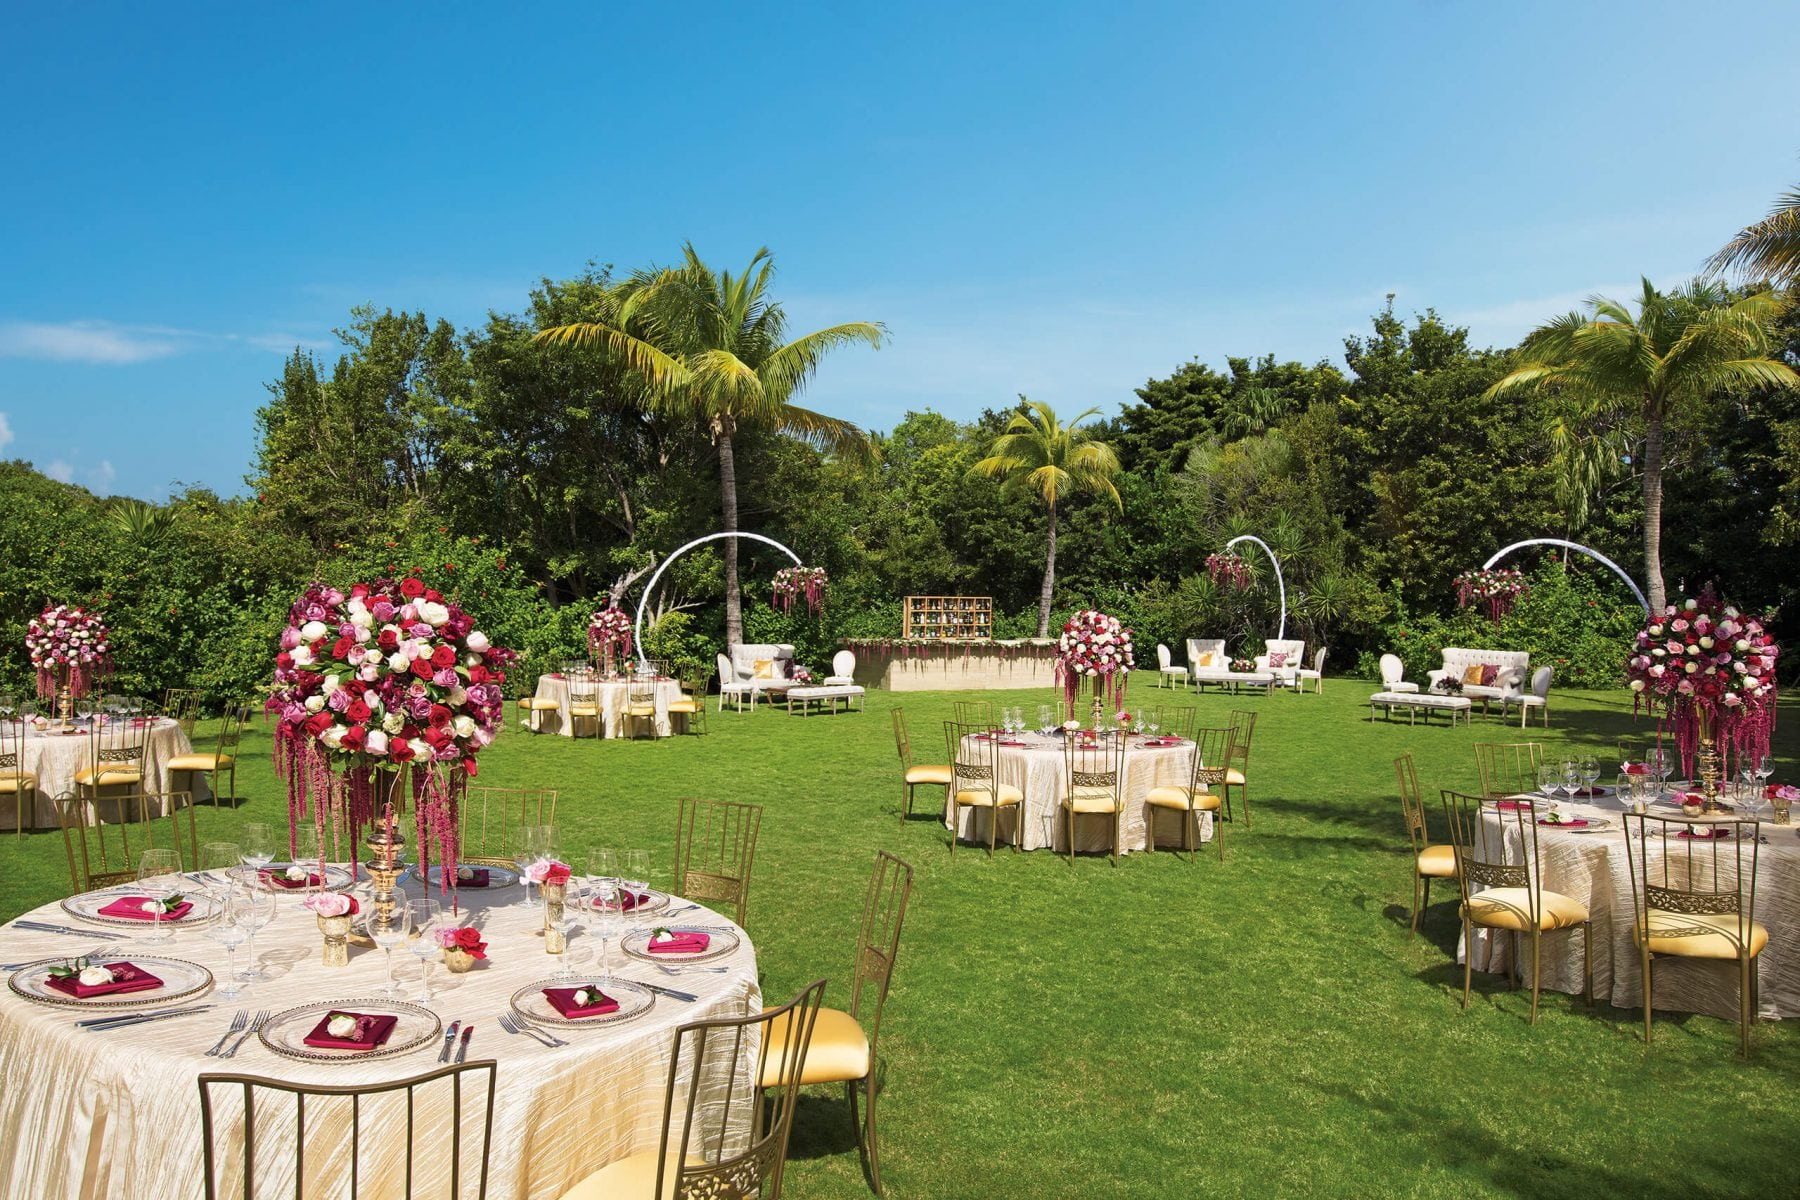 Wedding in reception Cancun garden location